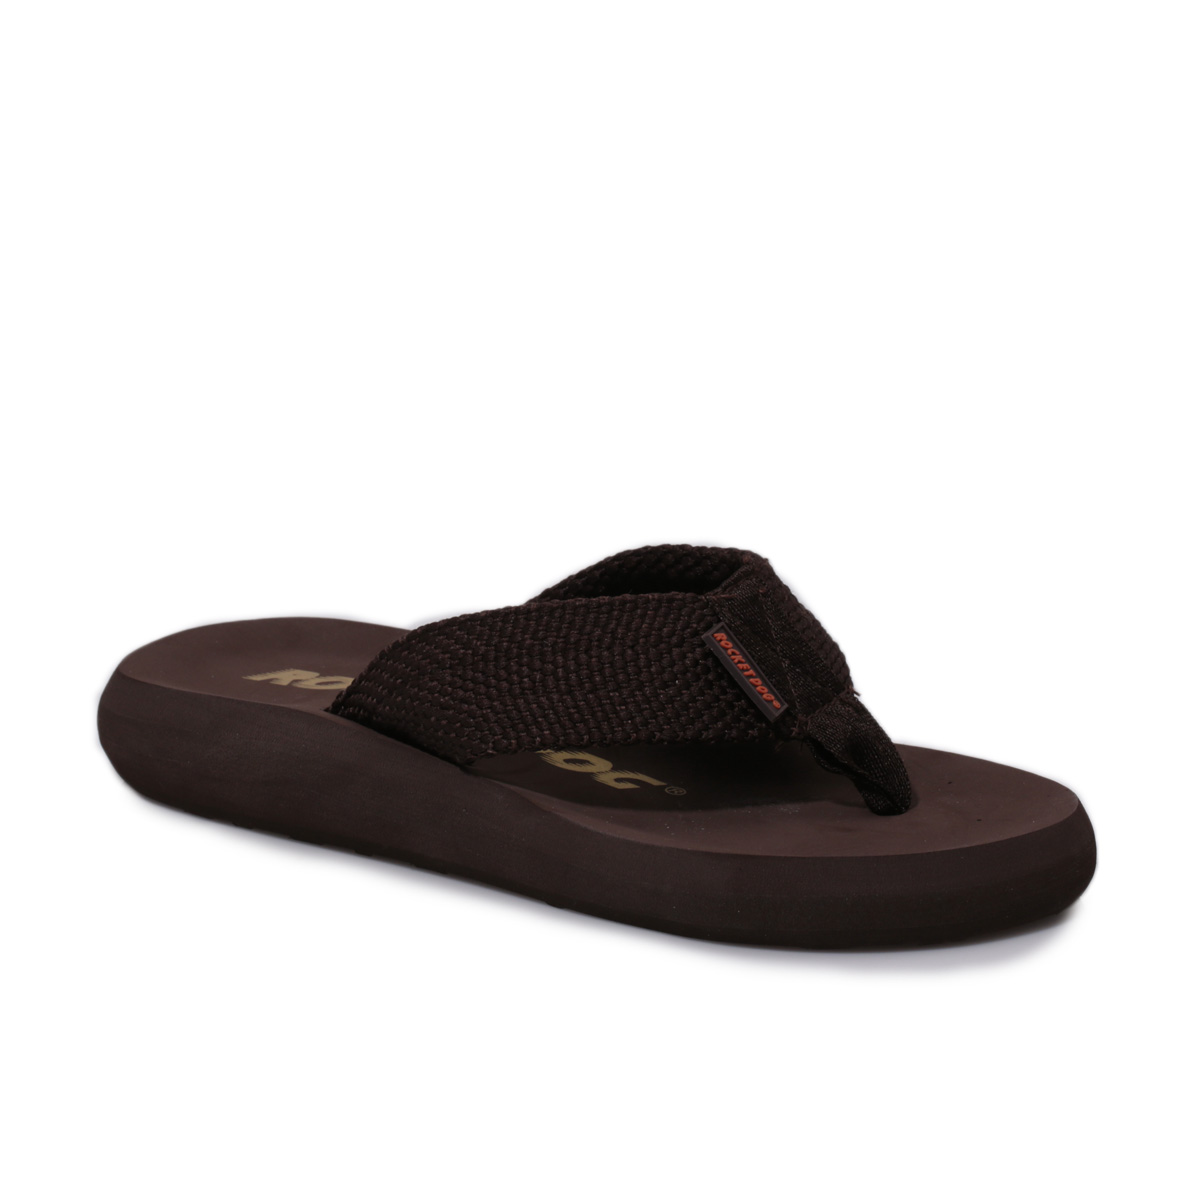 bde274572 Details about Rocket Dog Womens Sandal Toe Post Thong Sunset Webbing Brown  FlipFlop Shoes